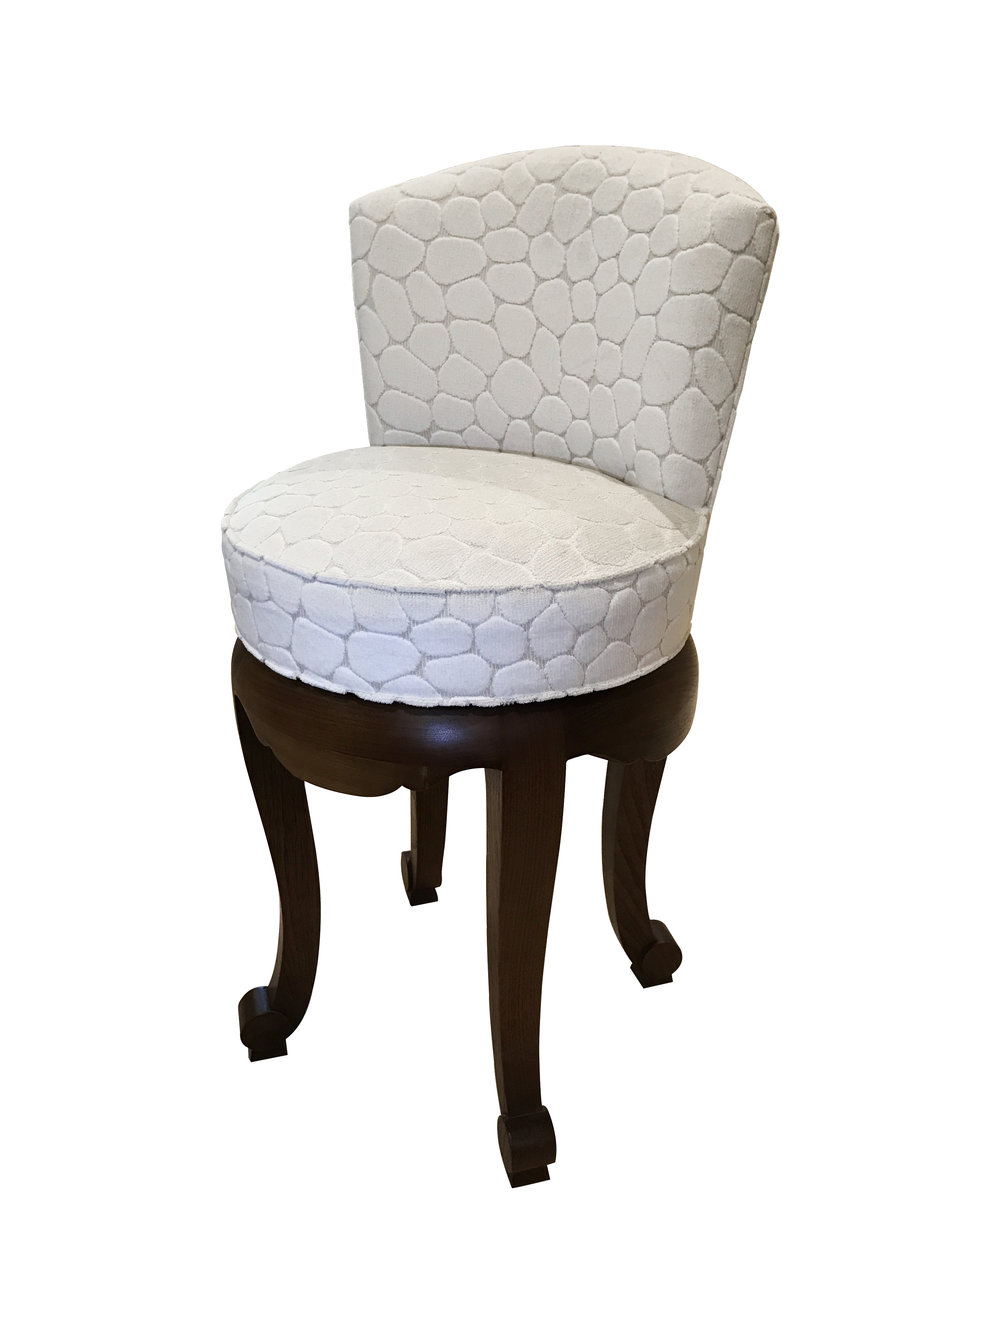 parlor chair.jpg